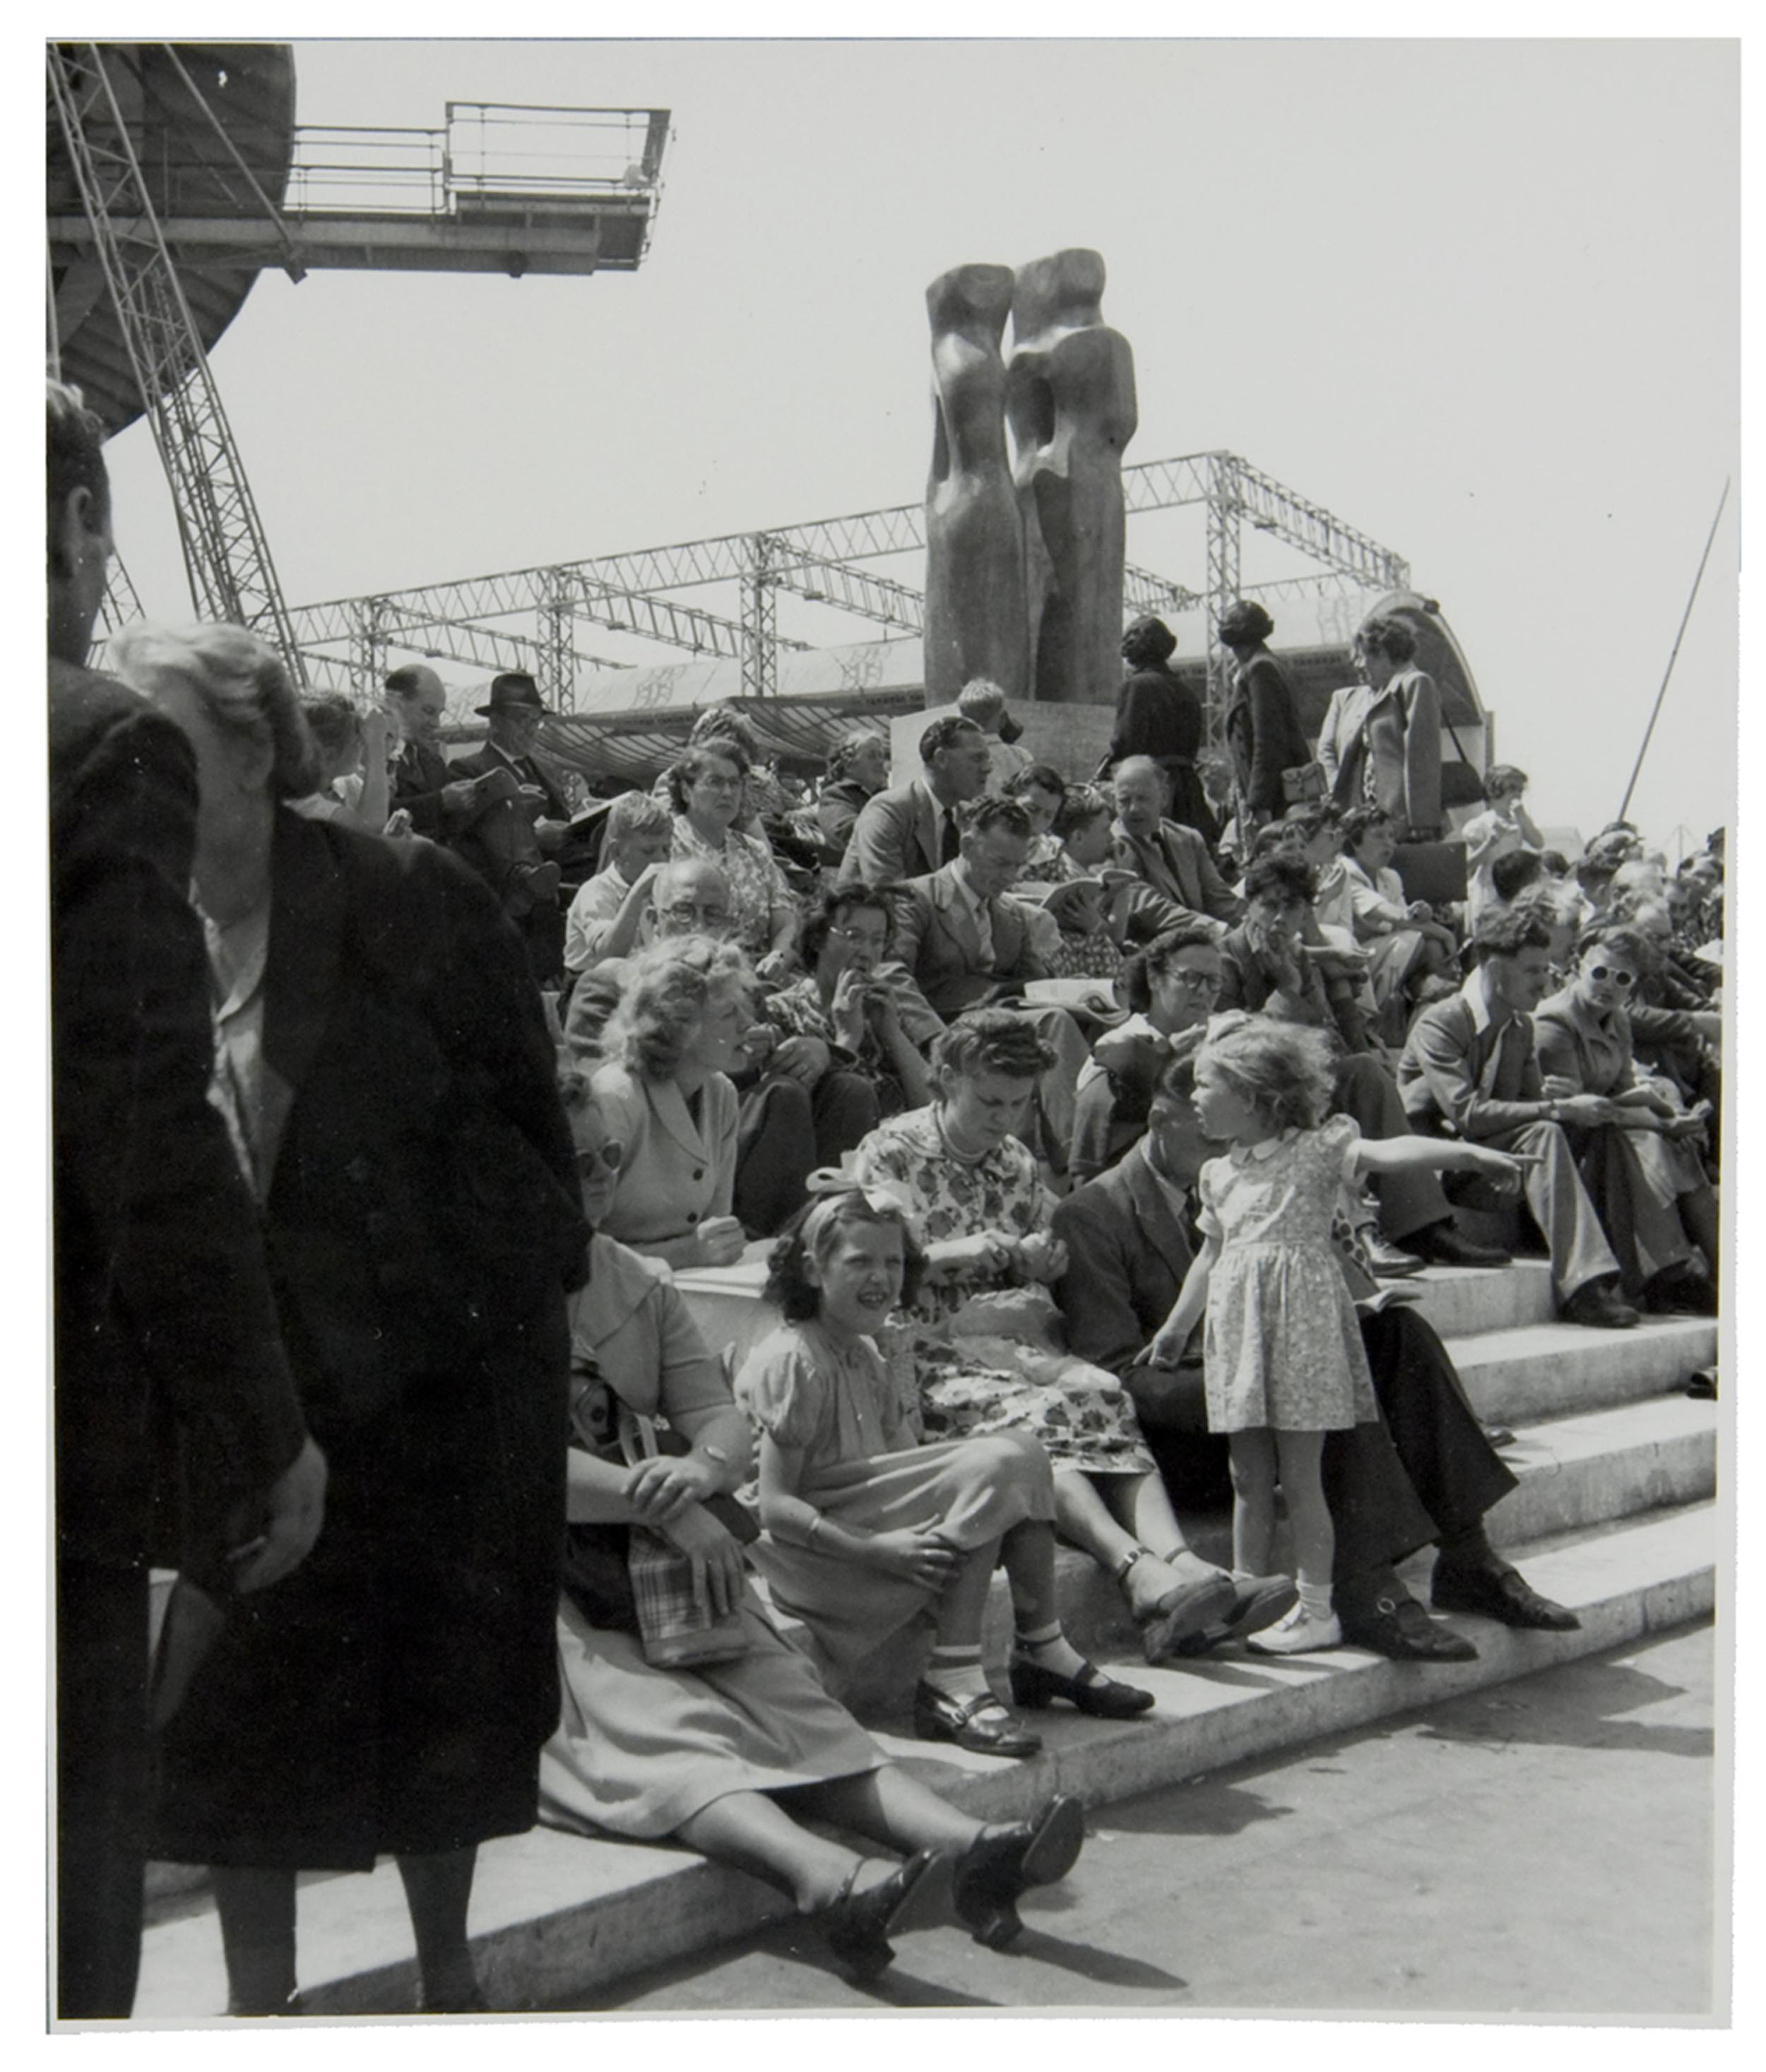 A photograph of a crowd with a Barbara Hepworth sculpture at the Festival of Britain, 1951 (catalogue reference: WORK25/213)